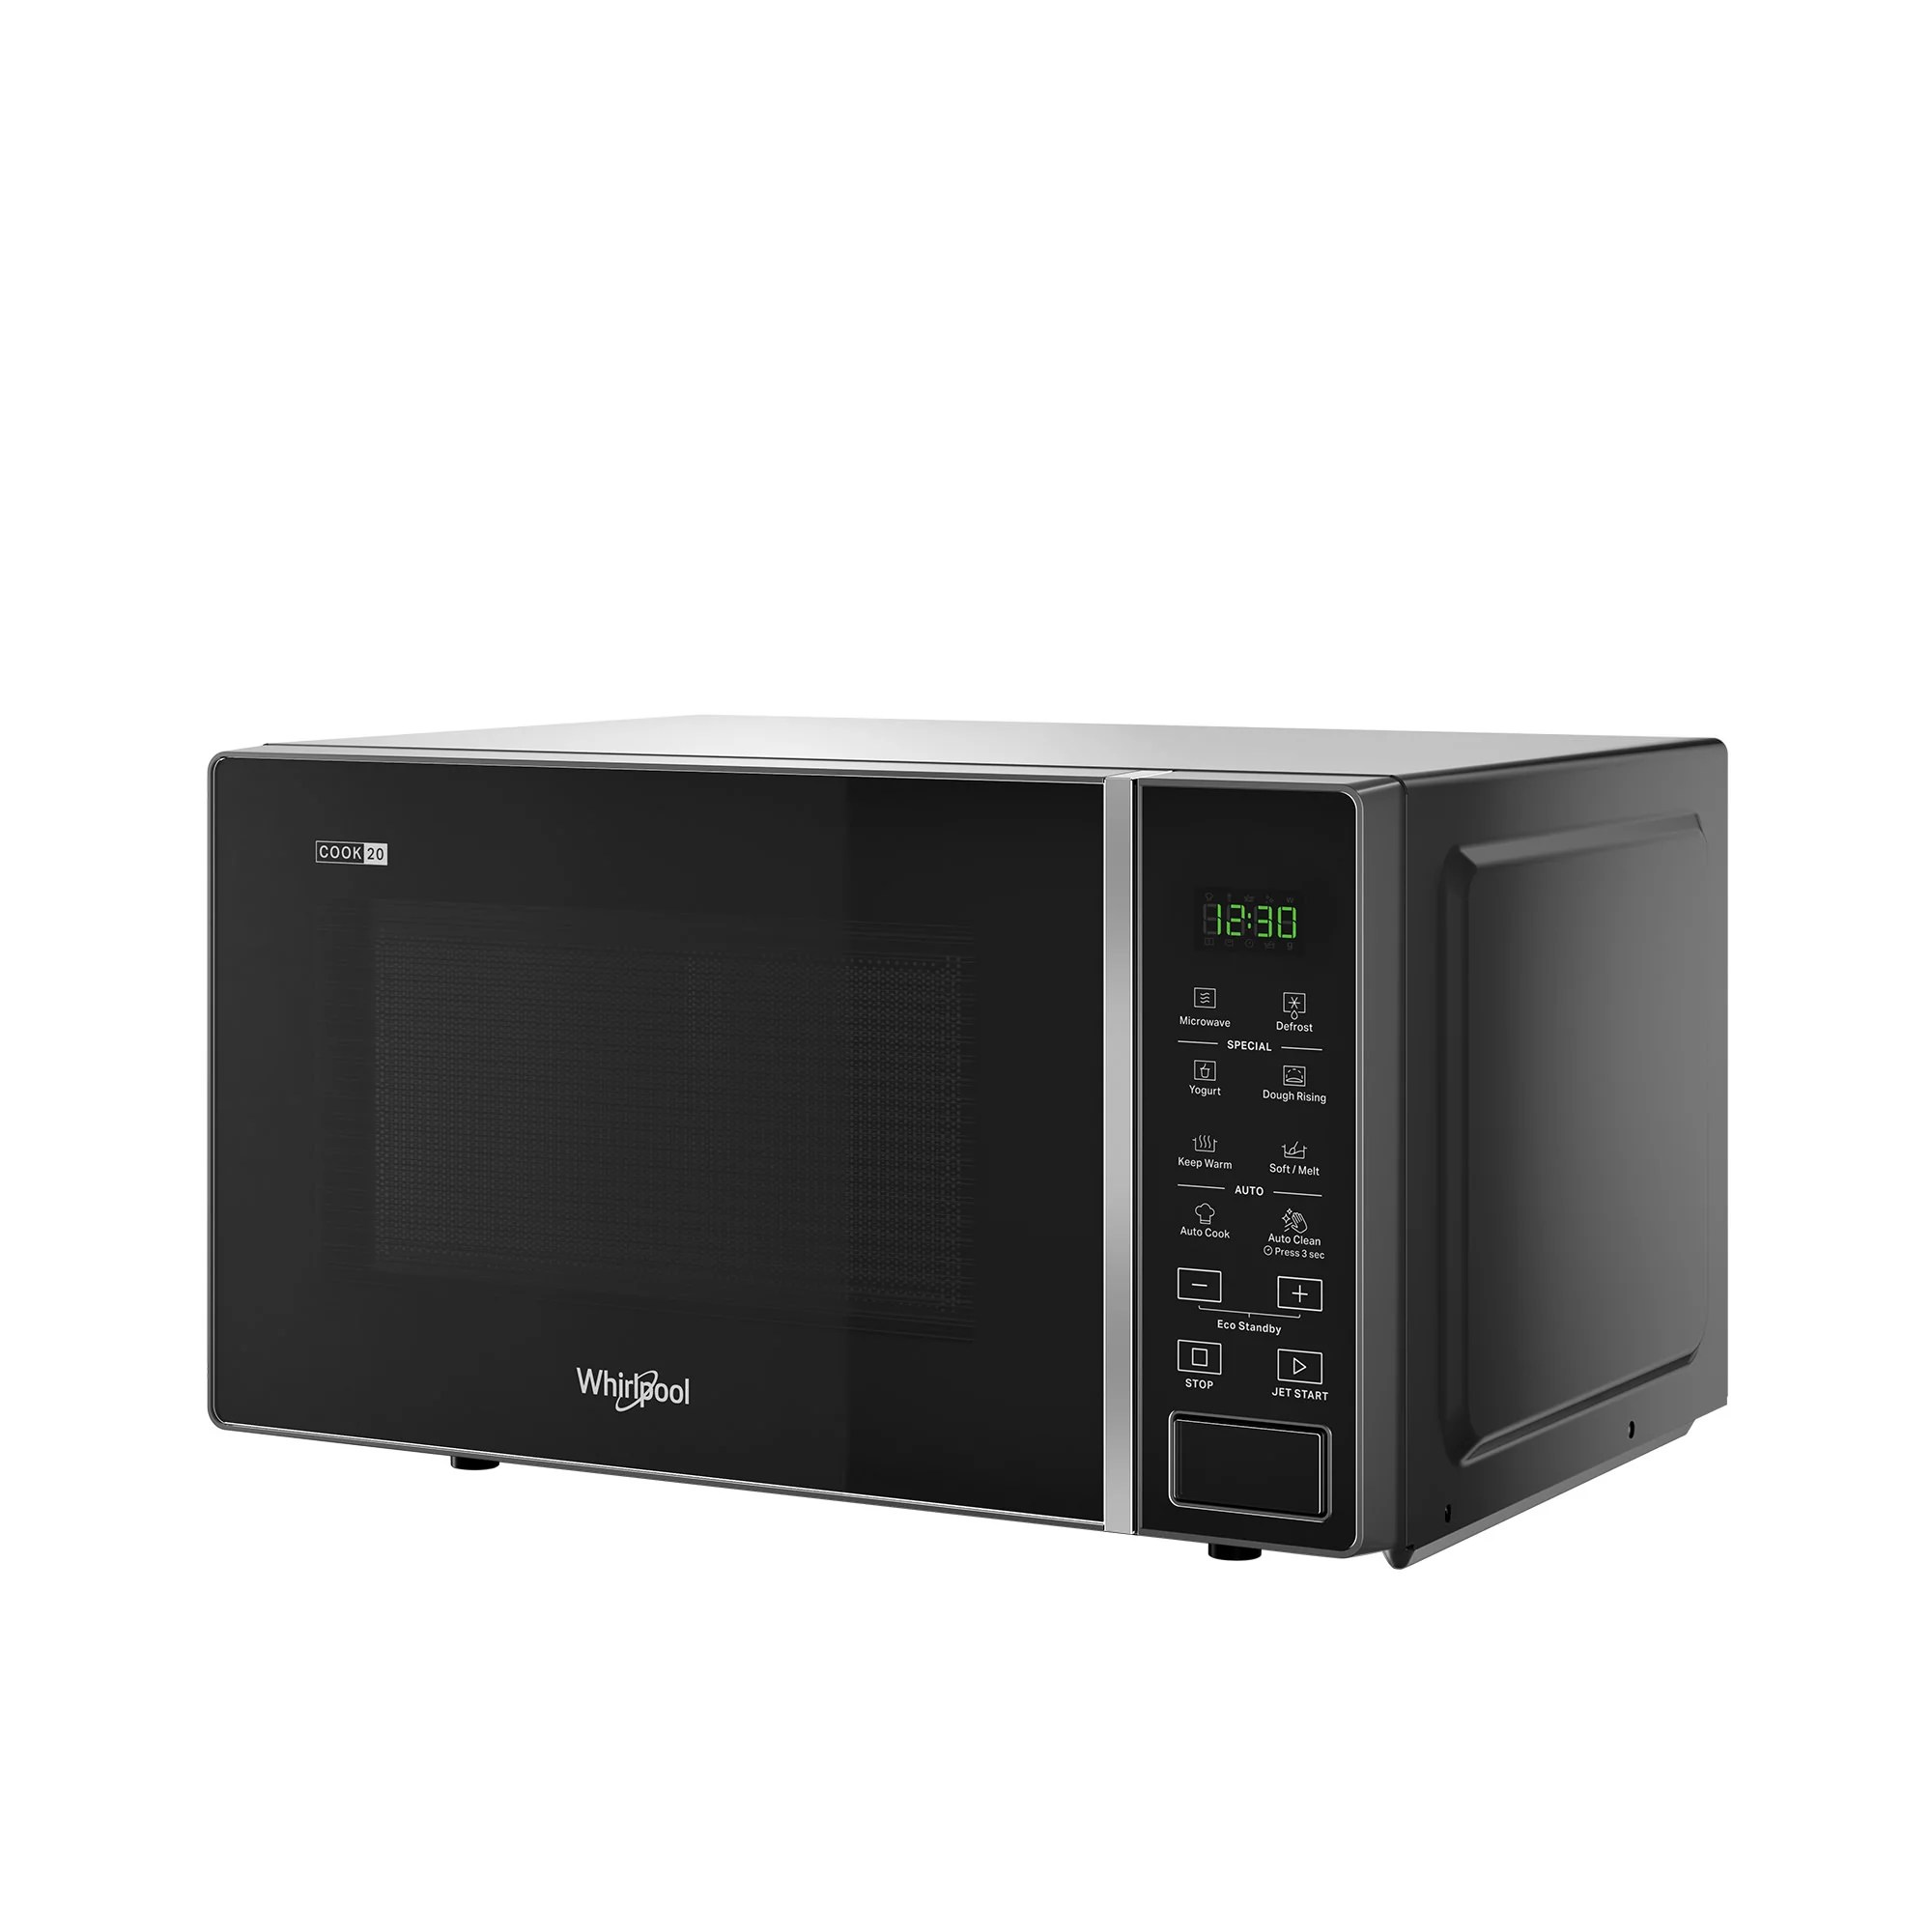 whirlpool microwave oven 20l black